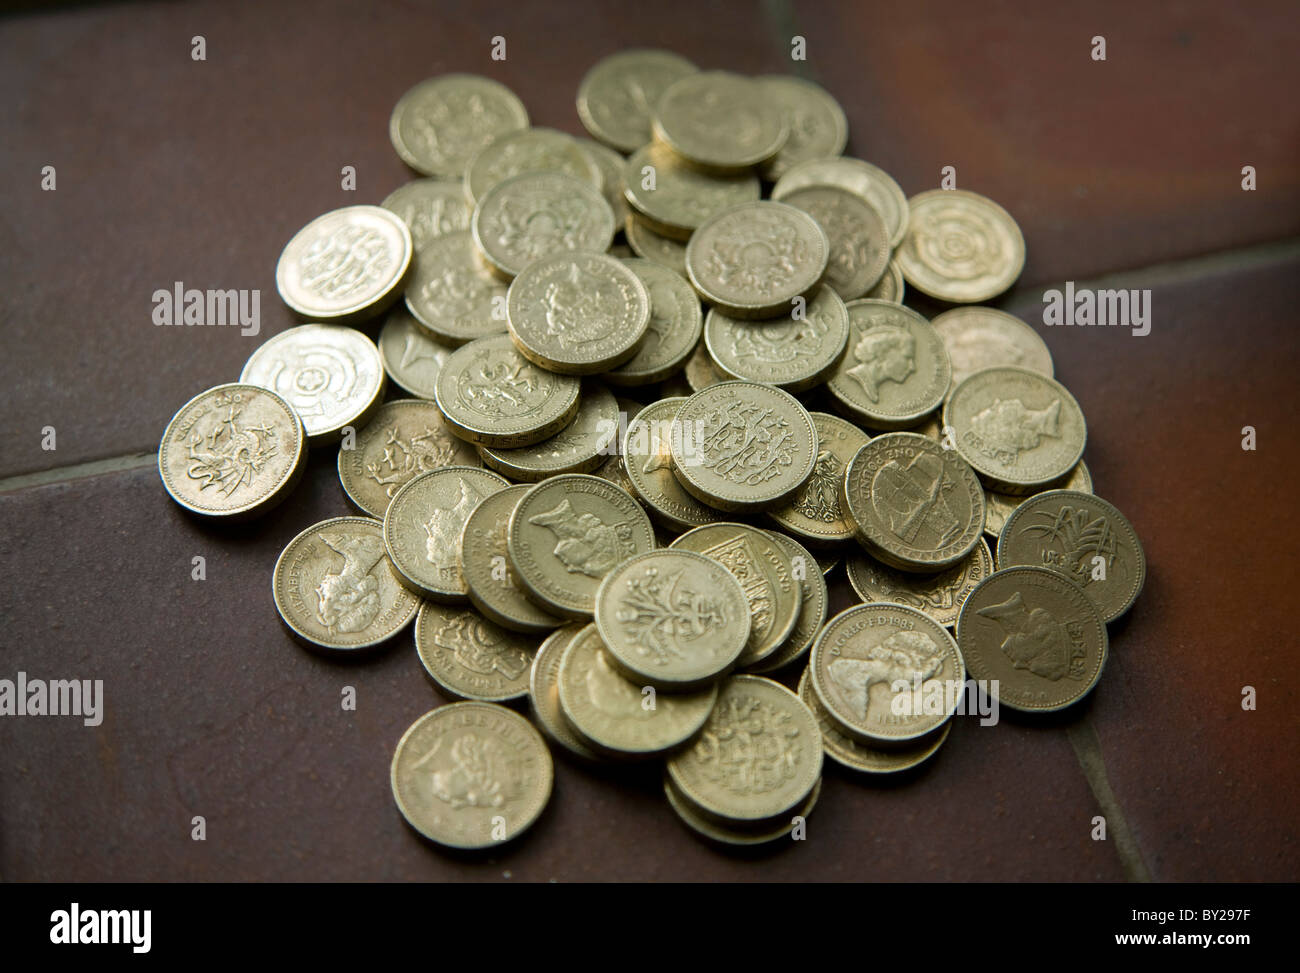 Pile pound coins - Stock Image